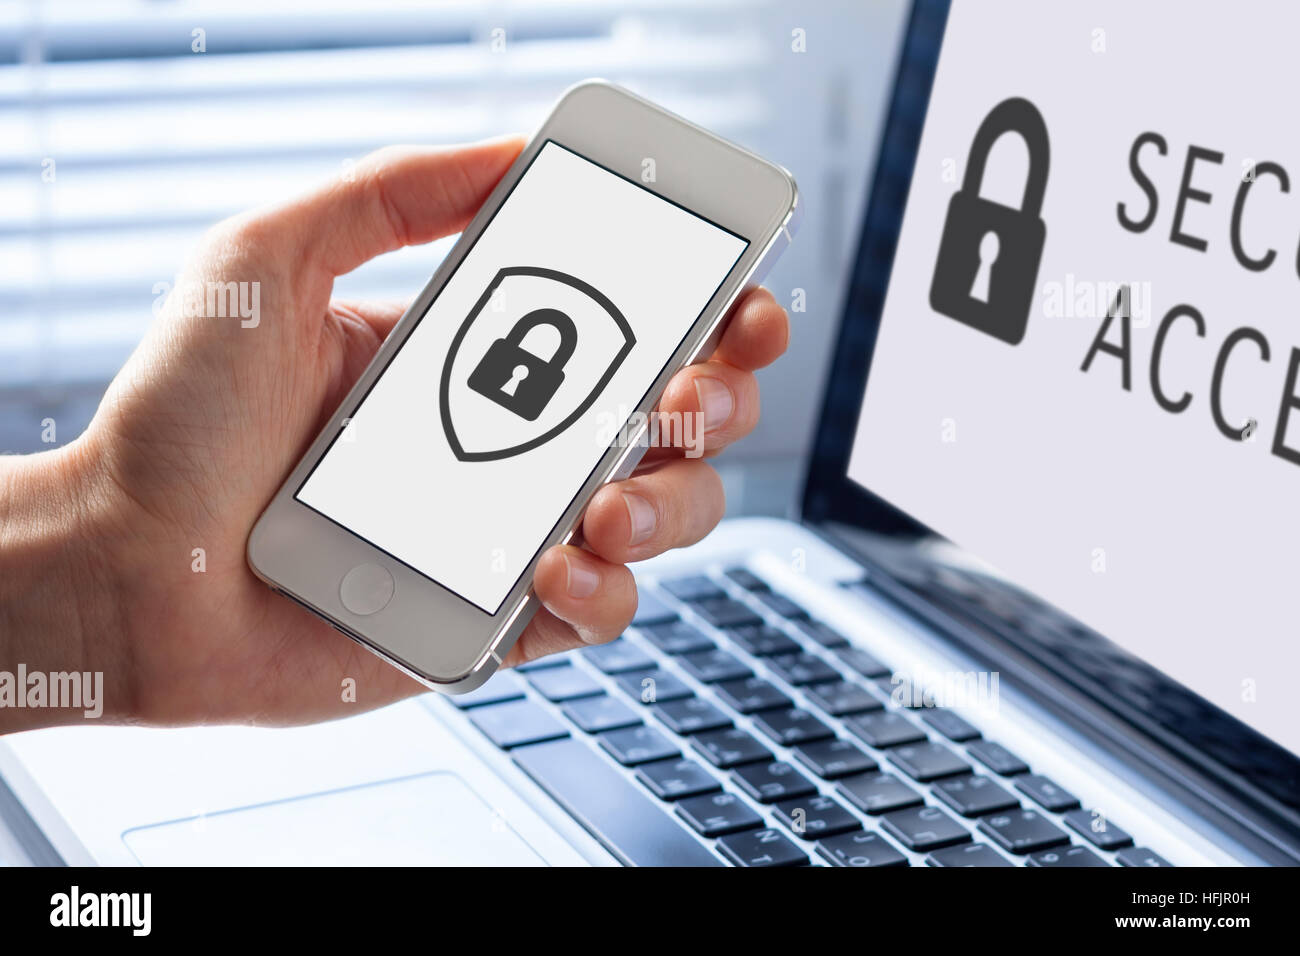 Cyber security symbol with icon of shield and lock on the screen of mobile phone and notebook computer Stock Photo